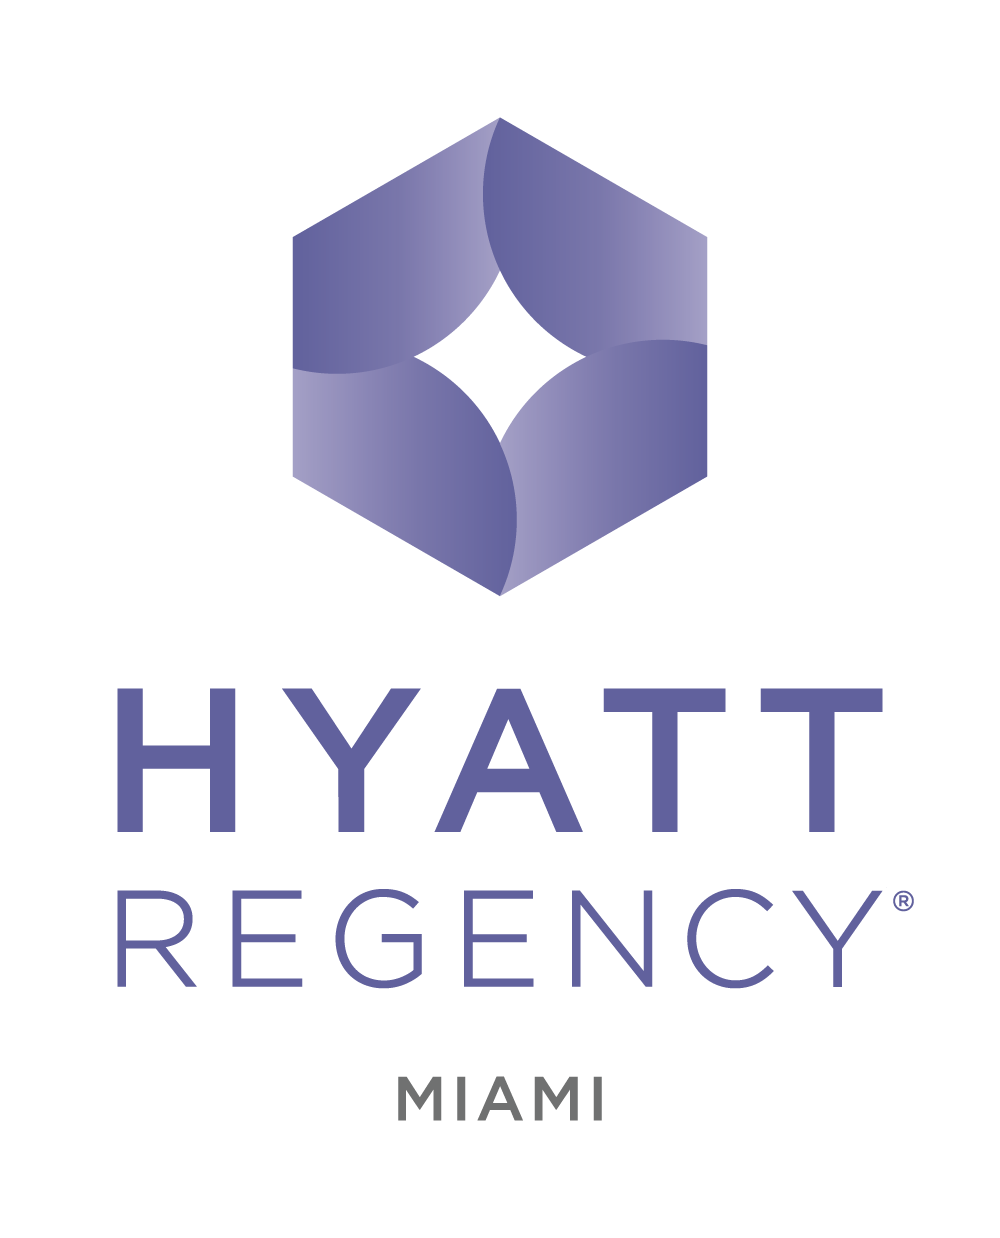 Hyatt Regency Miami logo